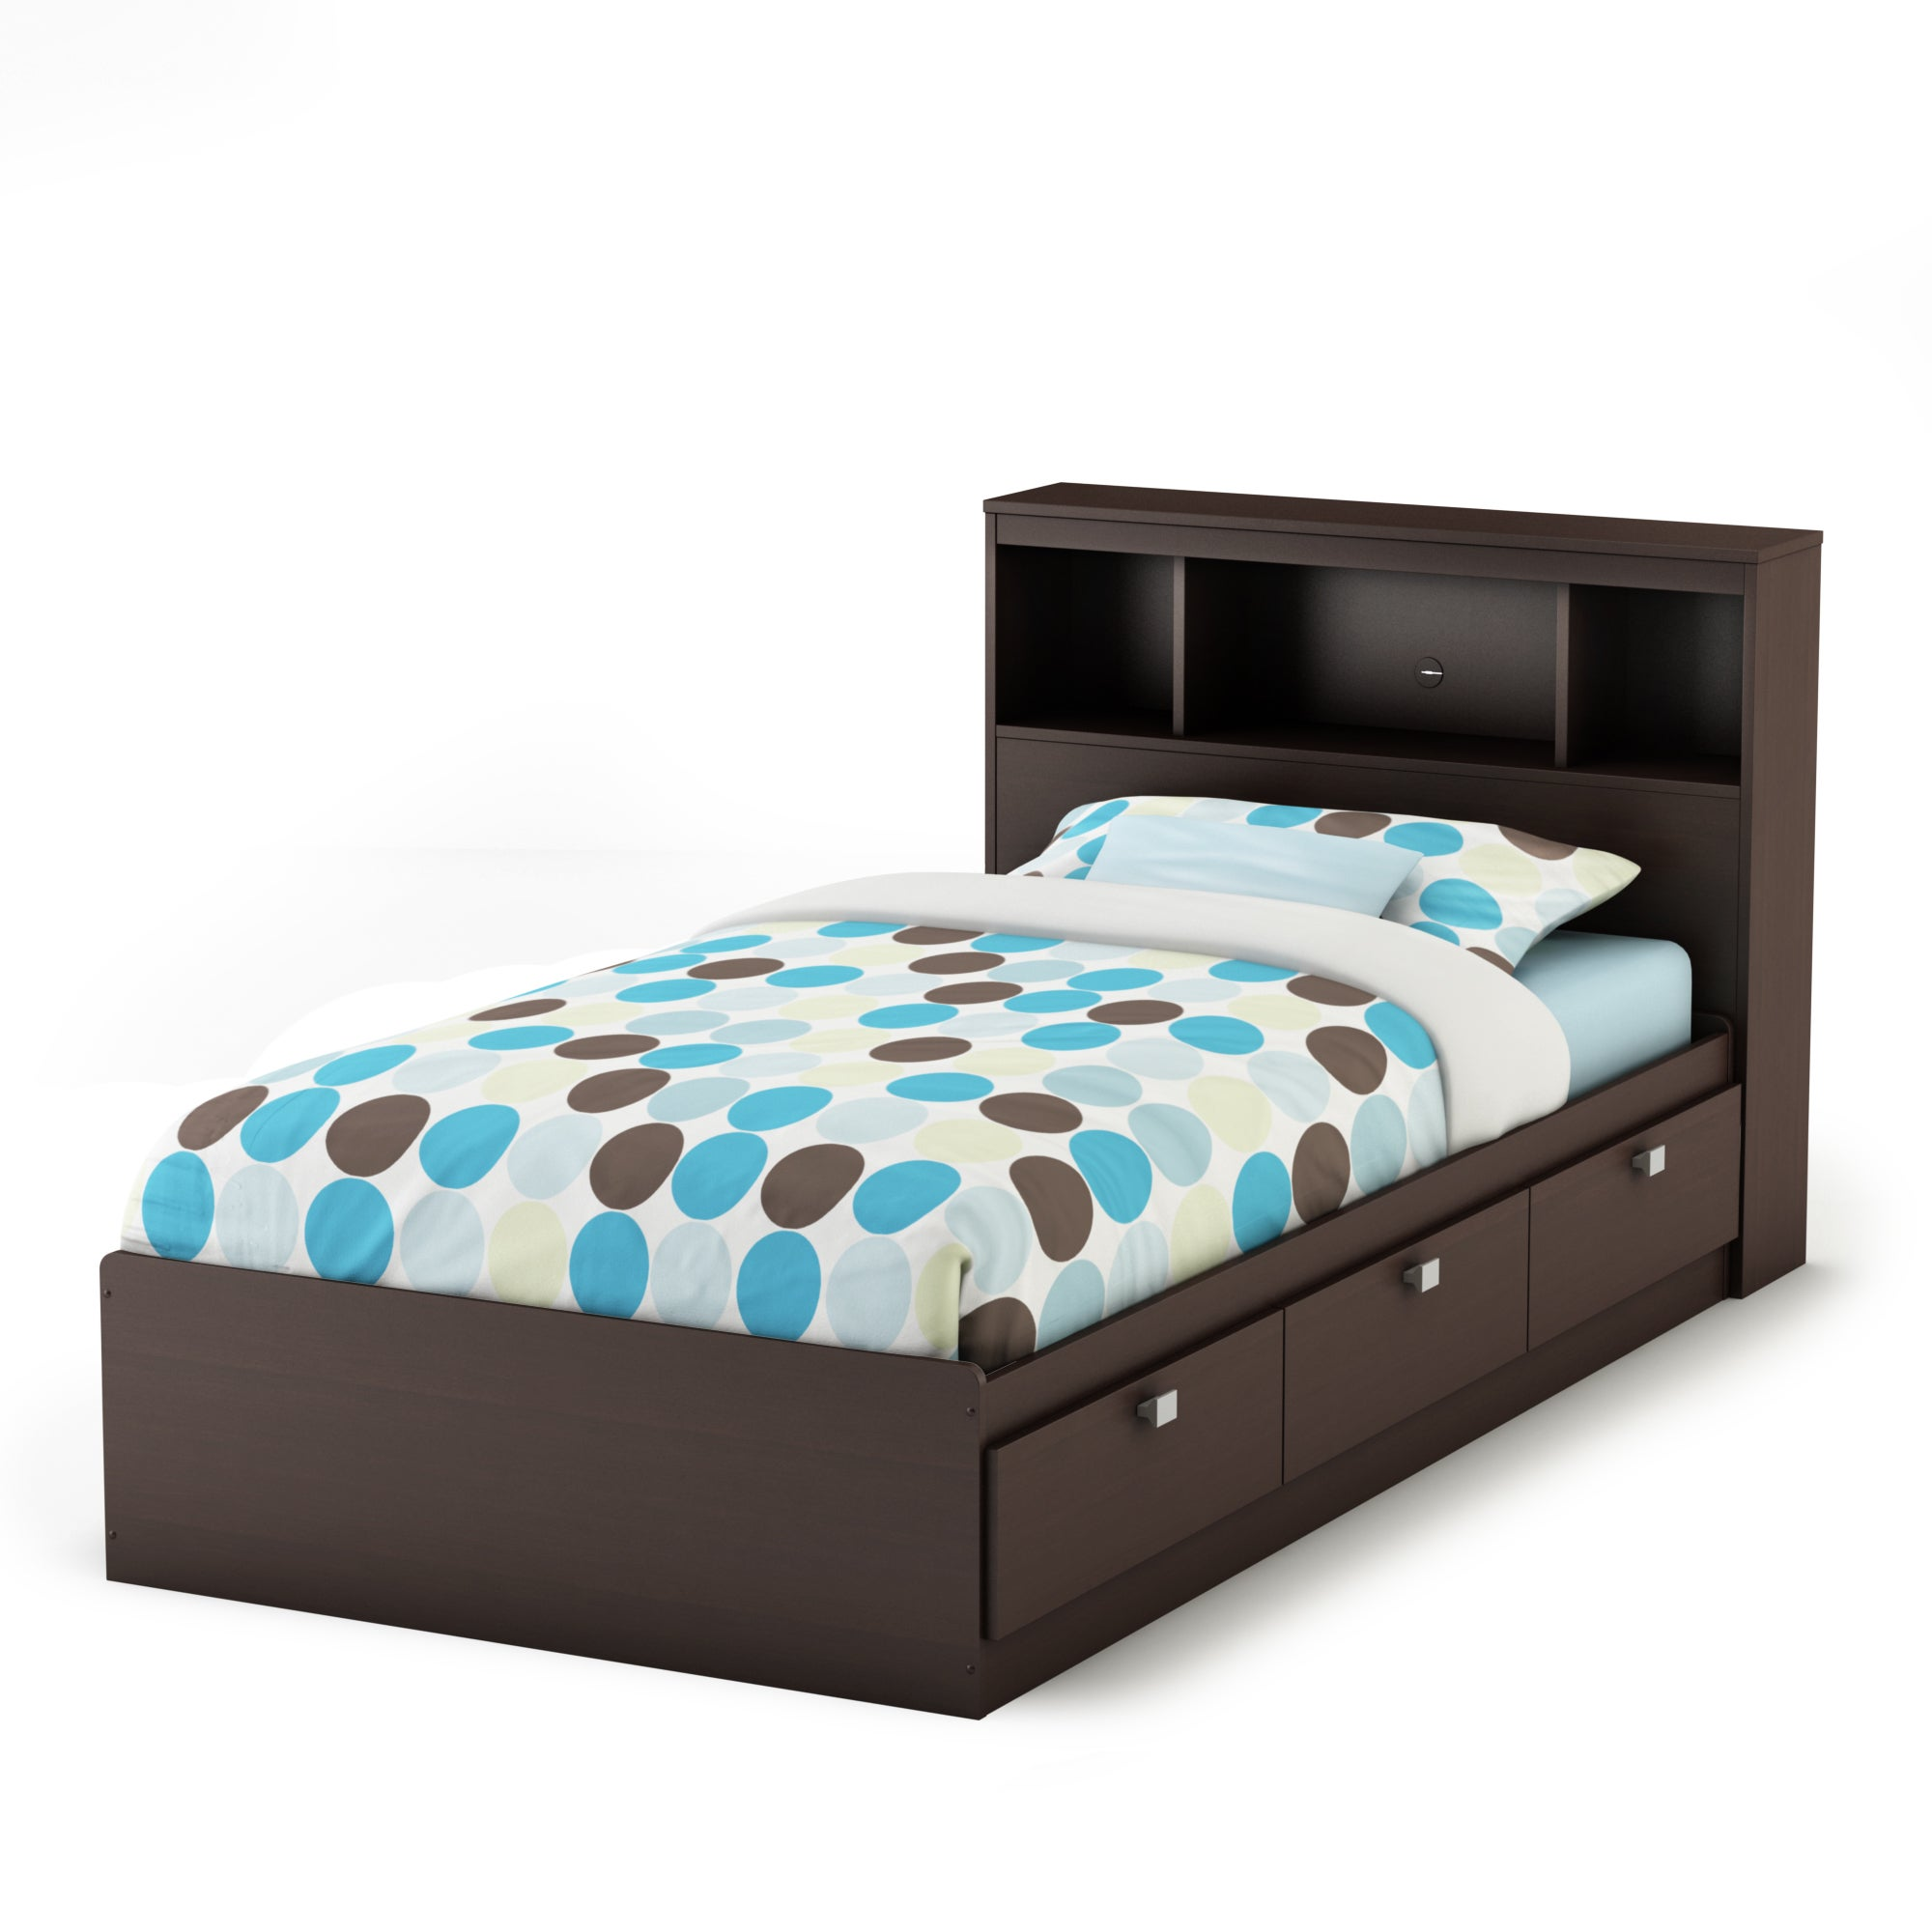 South Shore Spark Twin Storage Bed And Bookcase Headboard Overstock 14792160